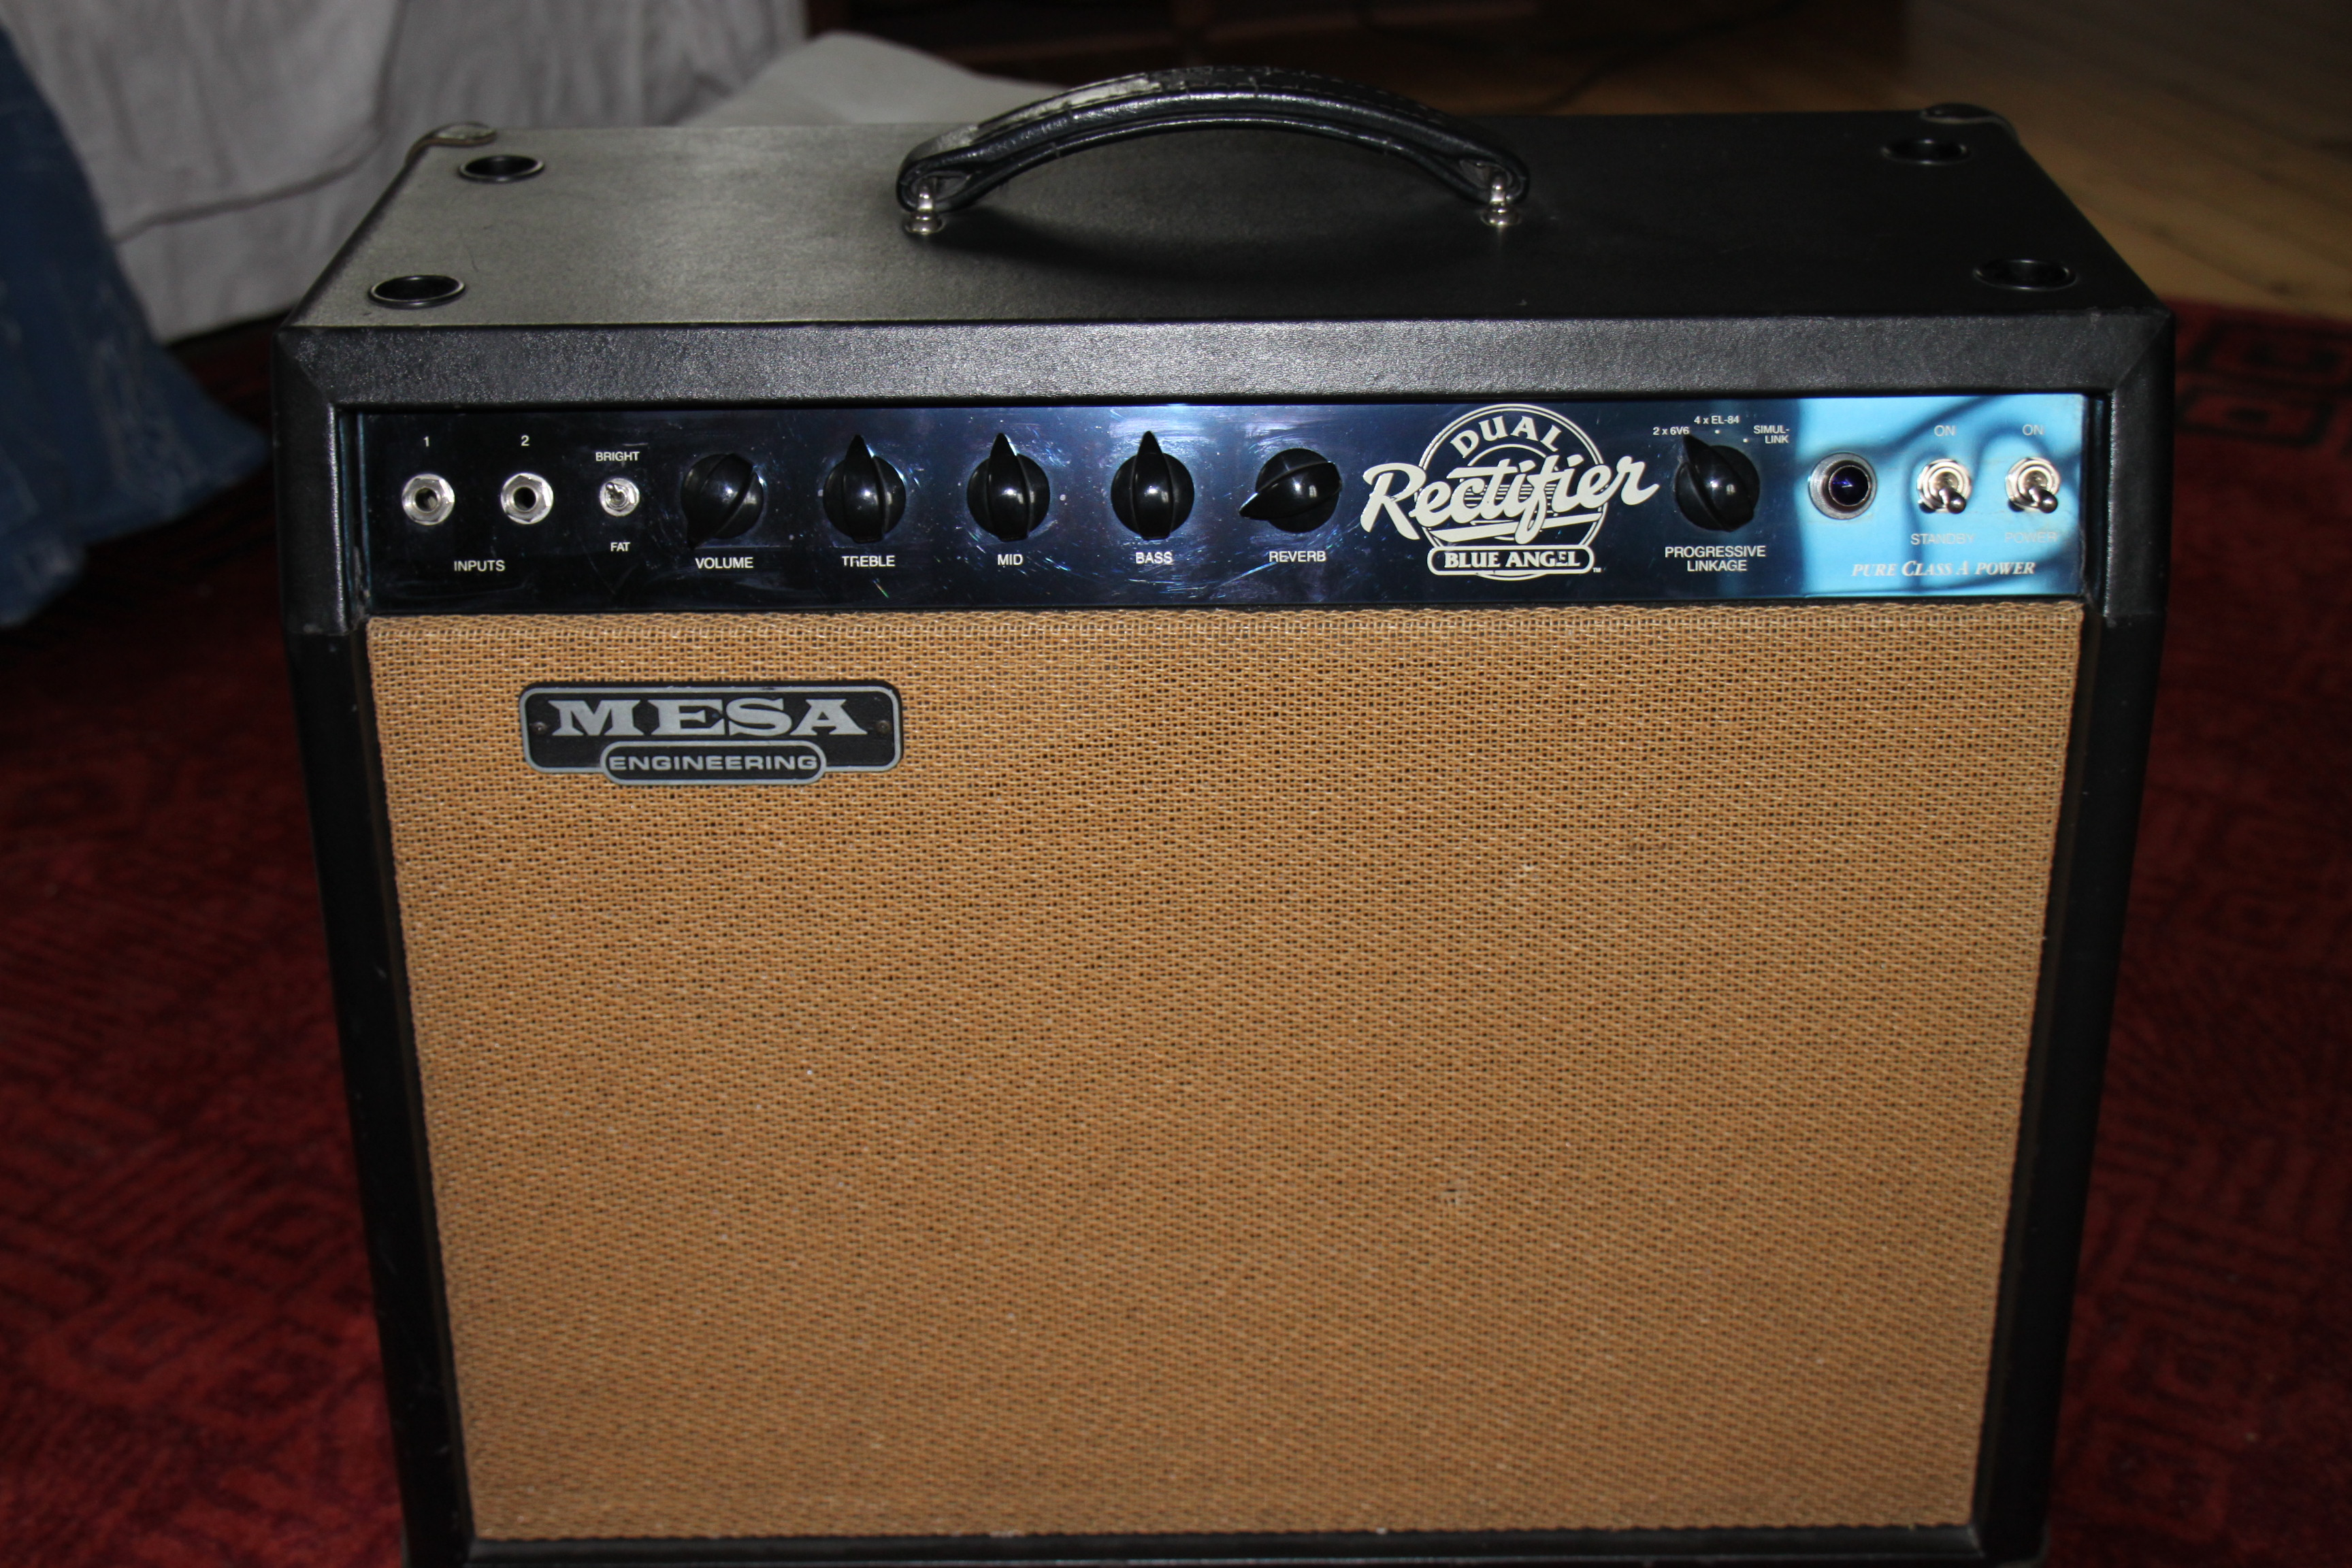 Mesa boogie blue angel 1x12 combo image 340387 for Mesa boogie blue angel